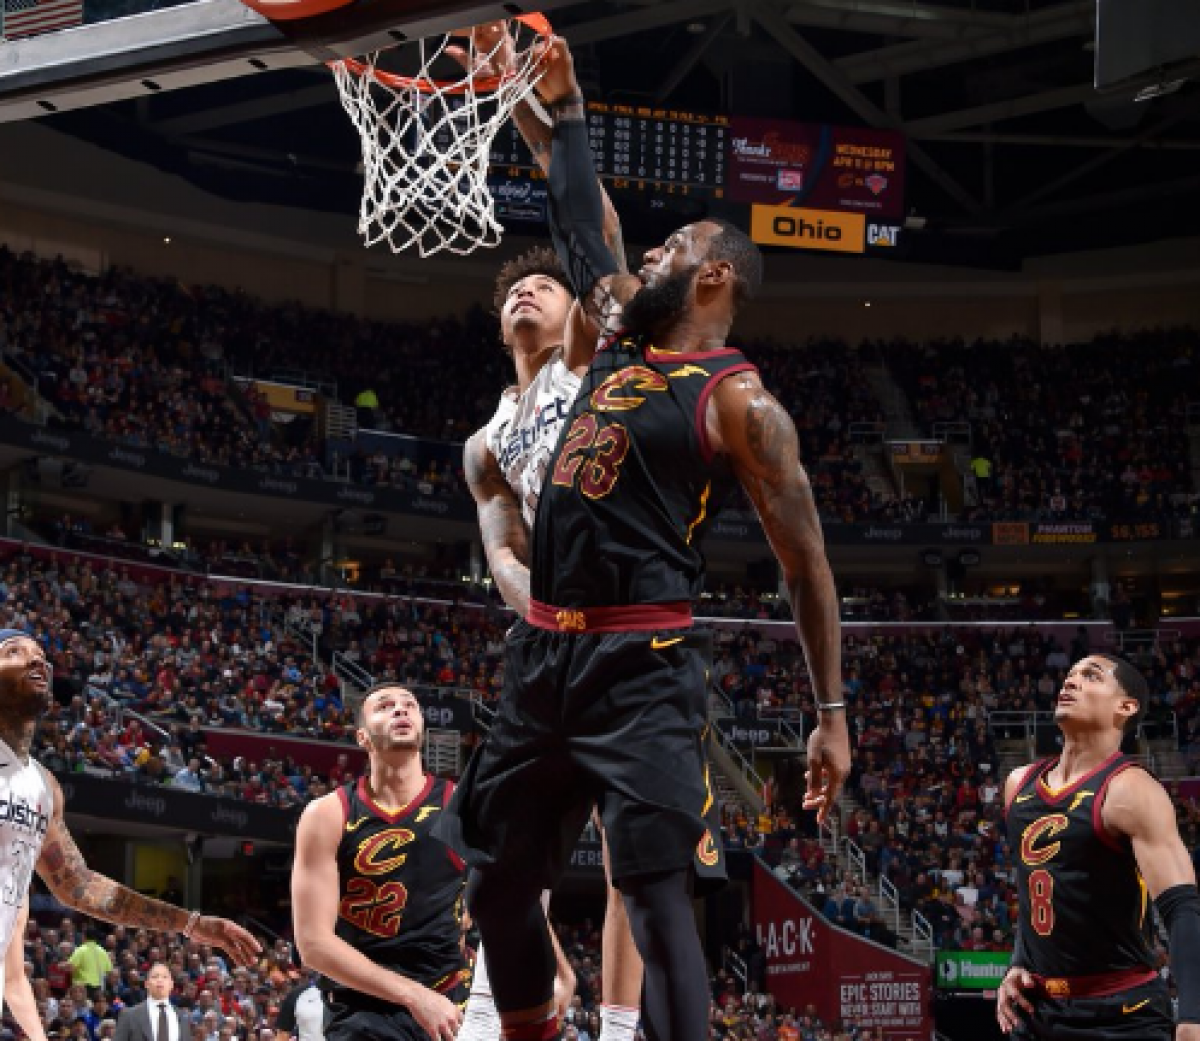 NBA - Ultimo quarto da favola, Cleveland ribalta i Washington Wizars